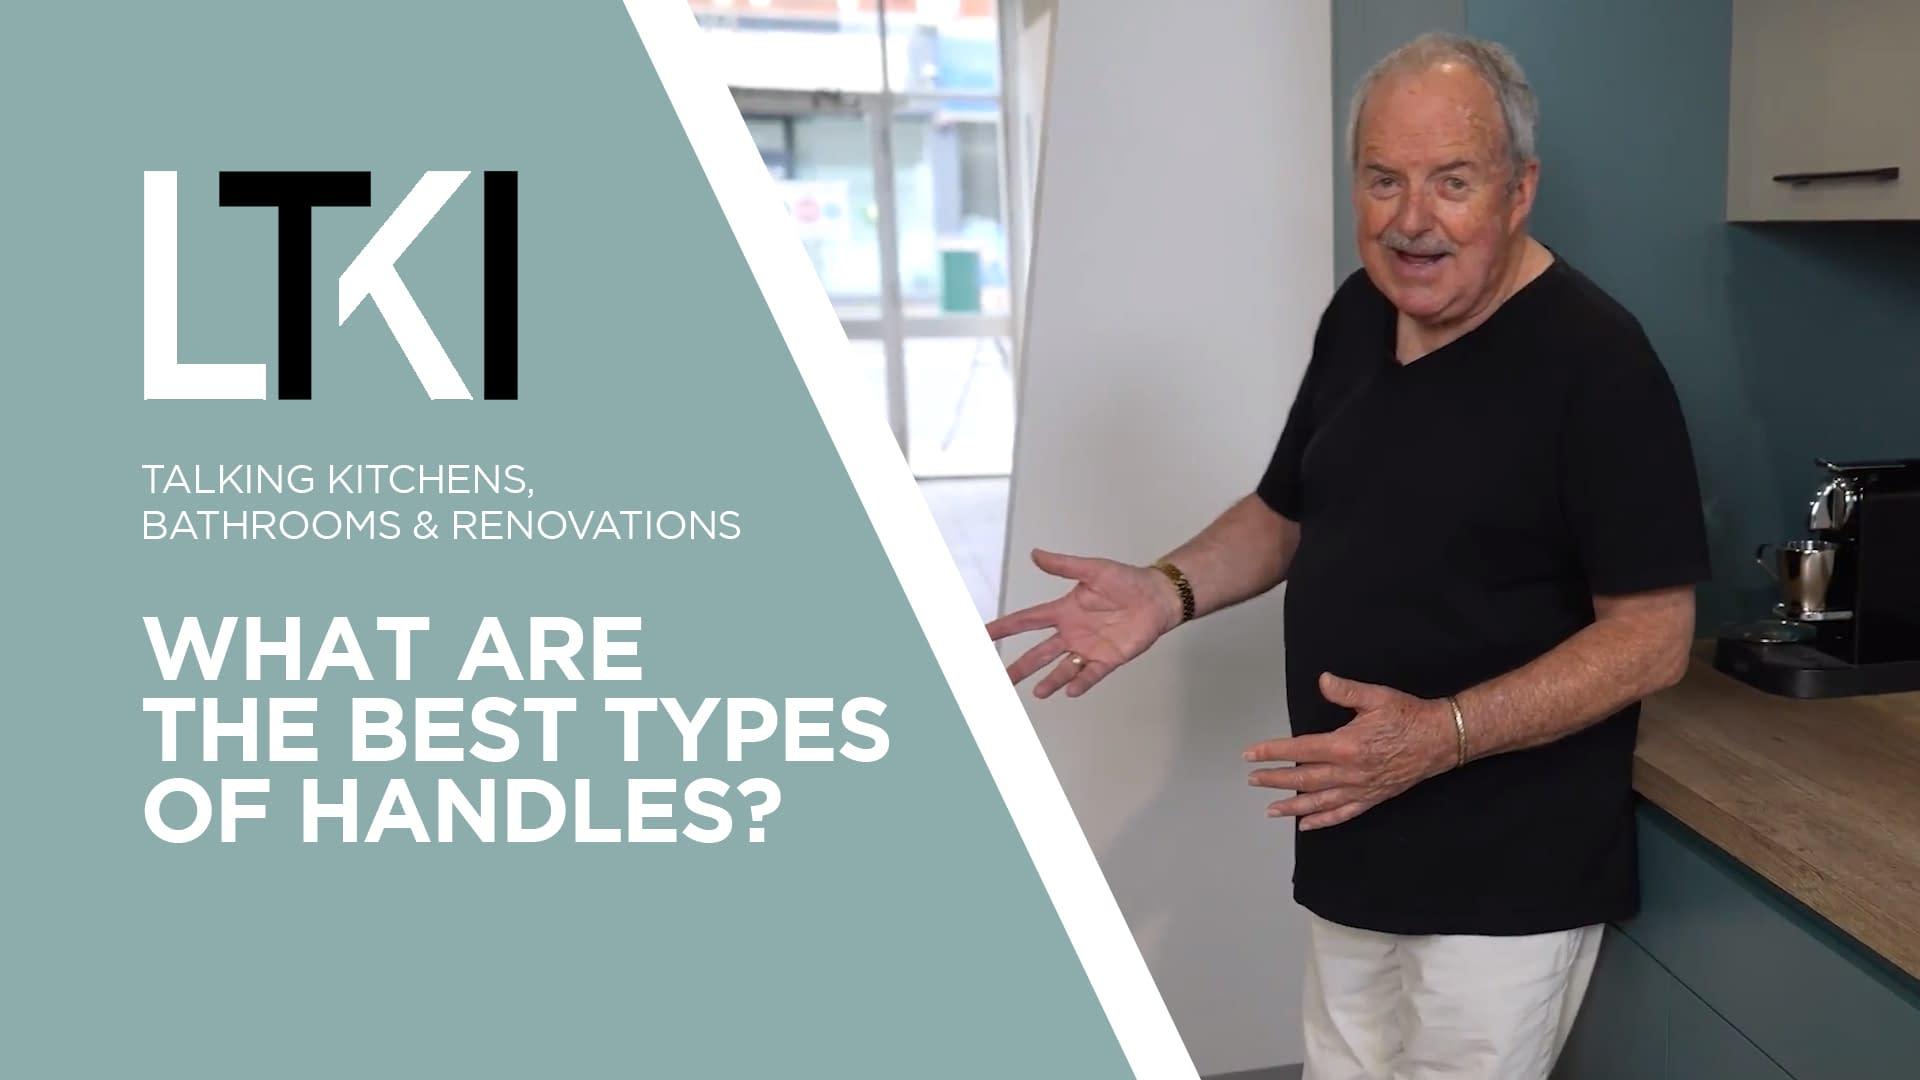 Talking Kitchens, Bathrooms & Renovations: What Are The Best Types Of Handles?